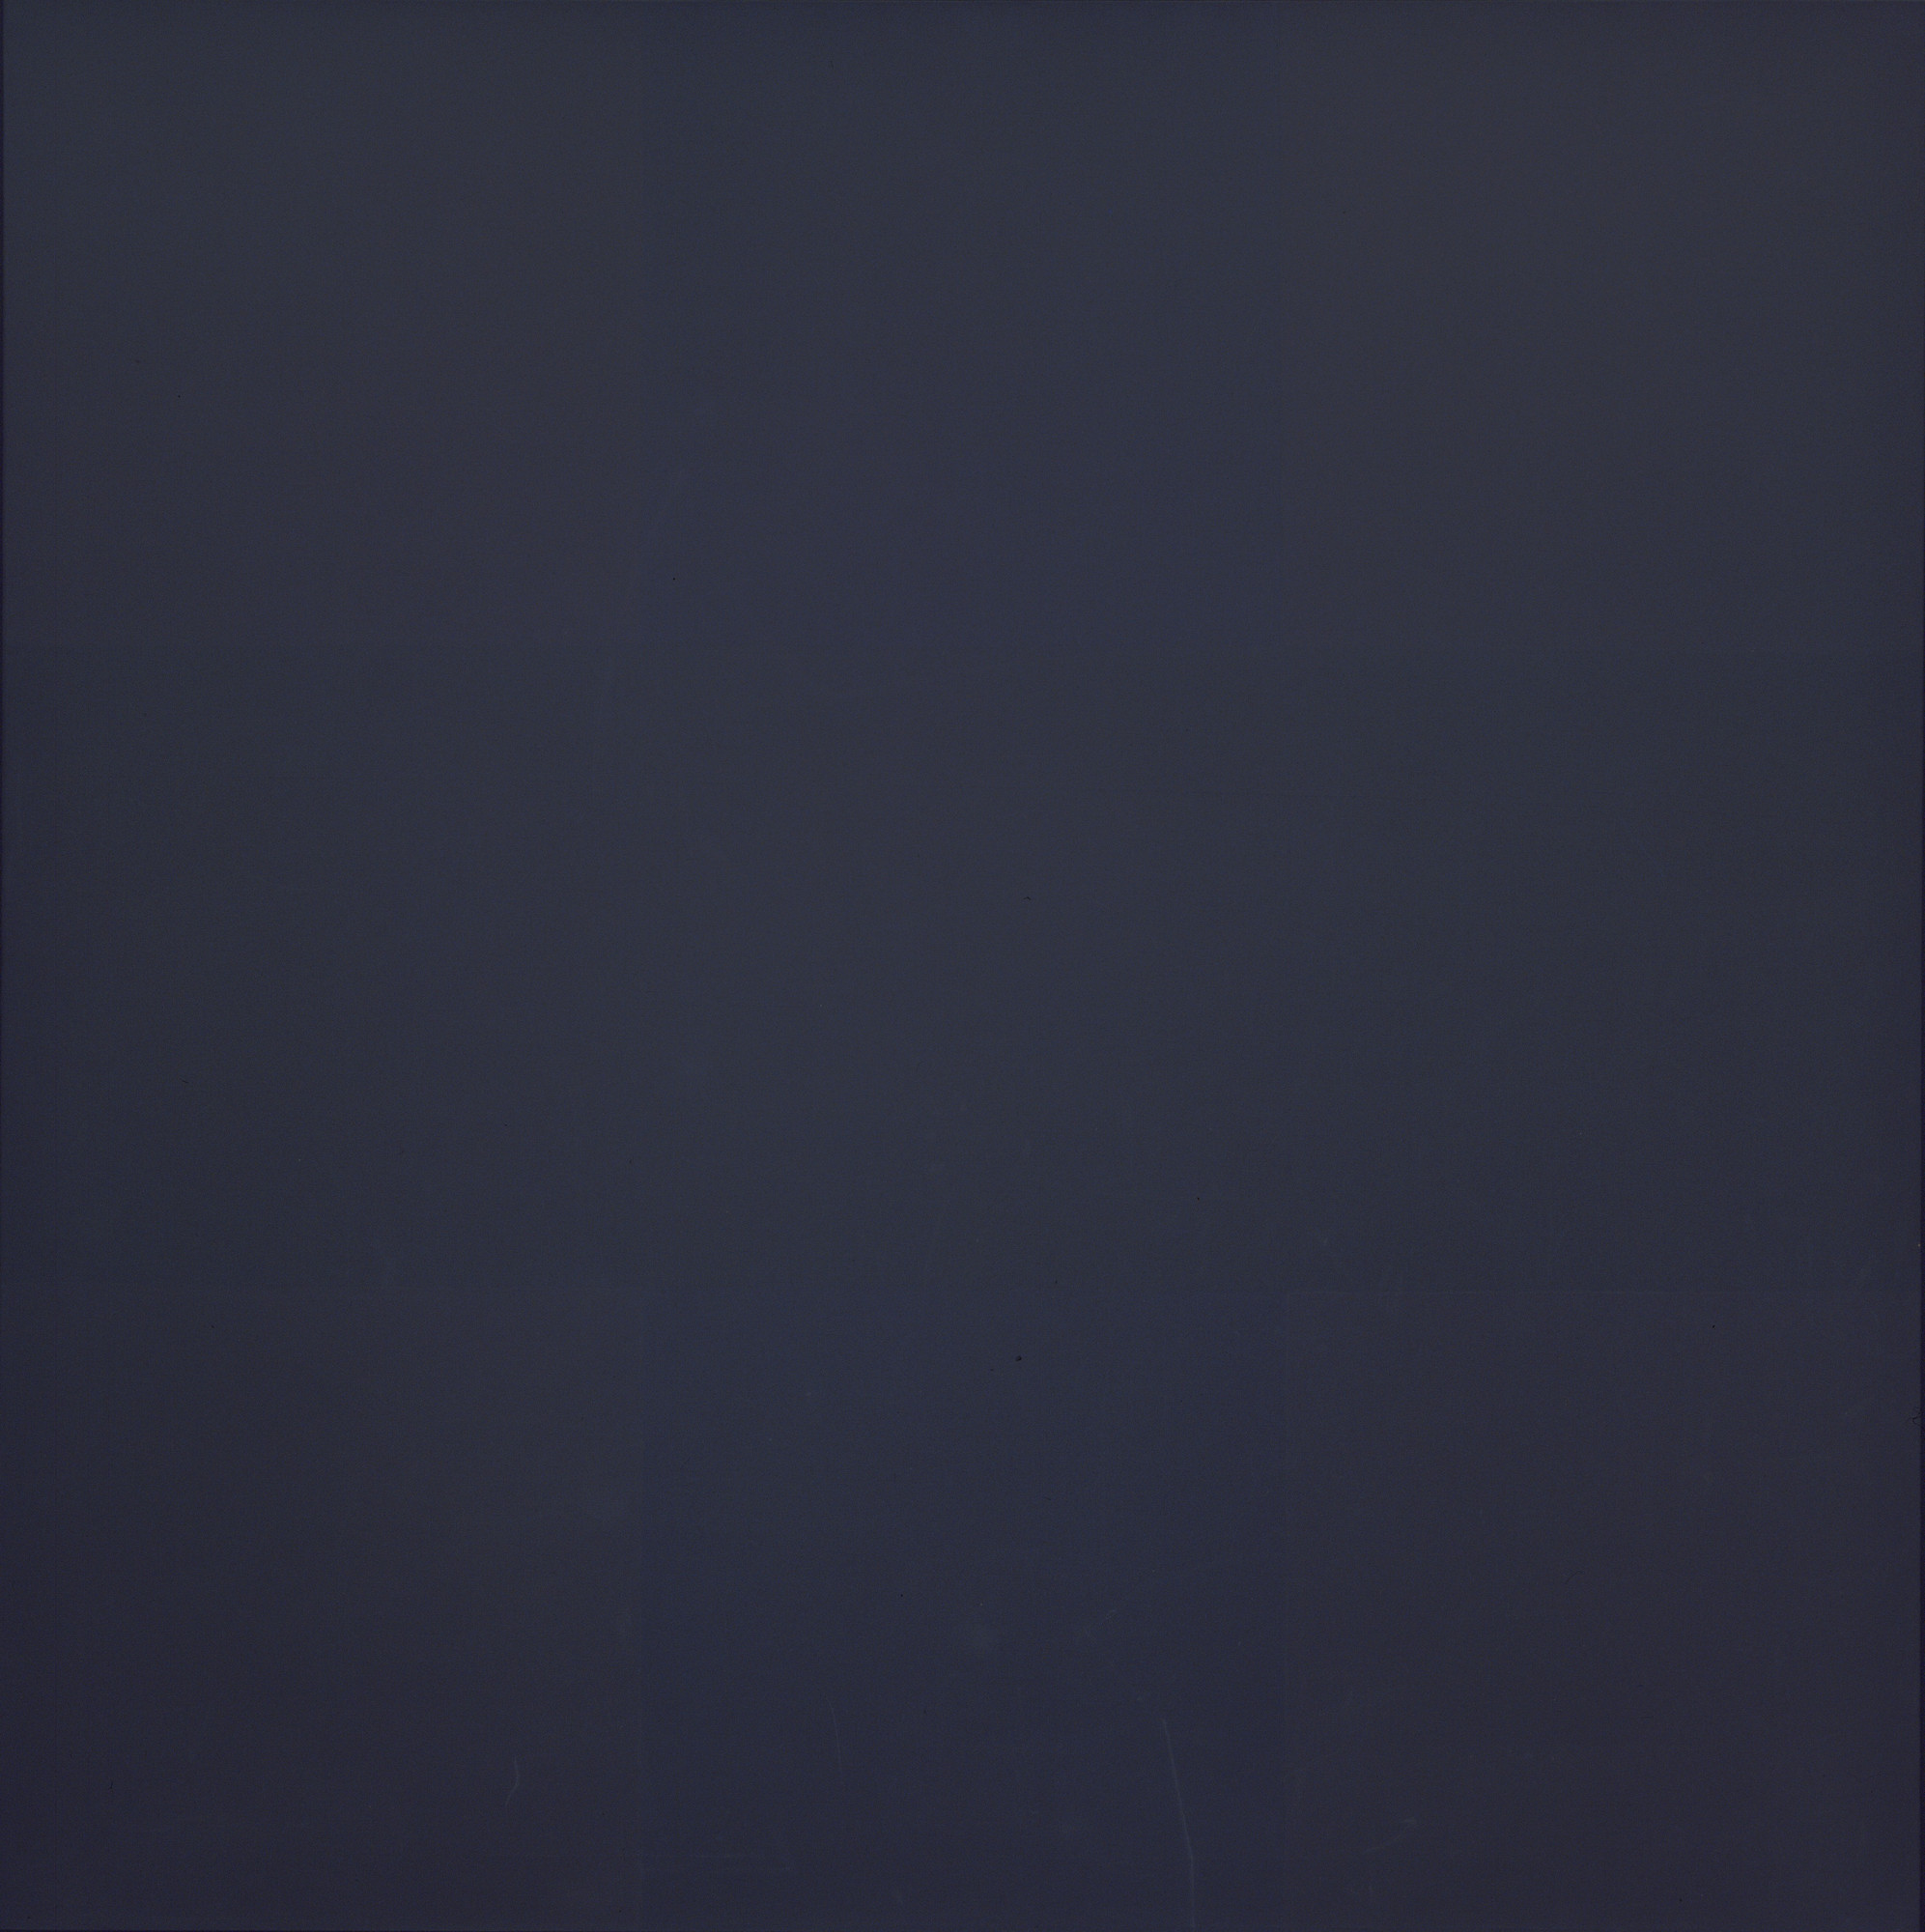 Ad Reinhardt. Abstract Painting. 1960-61